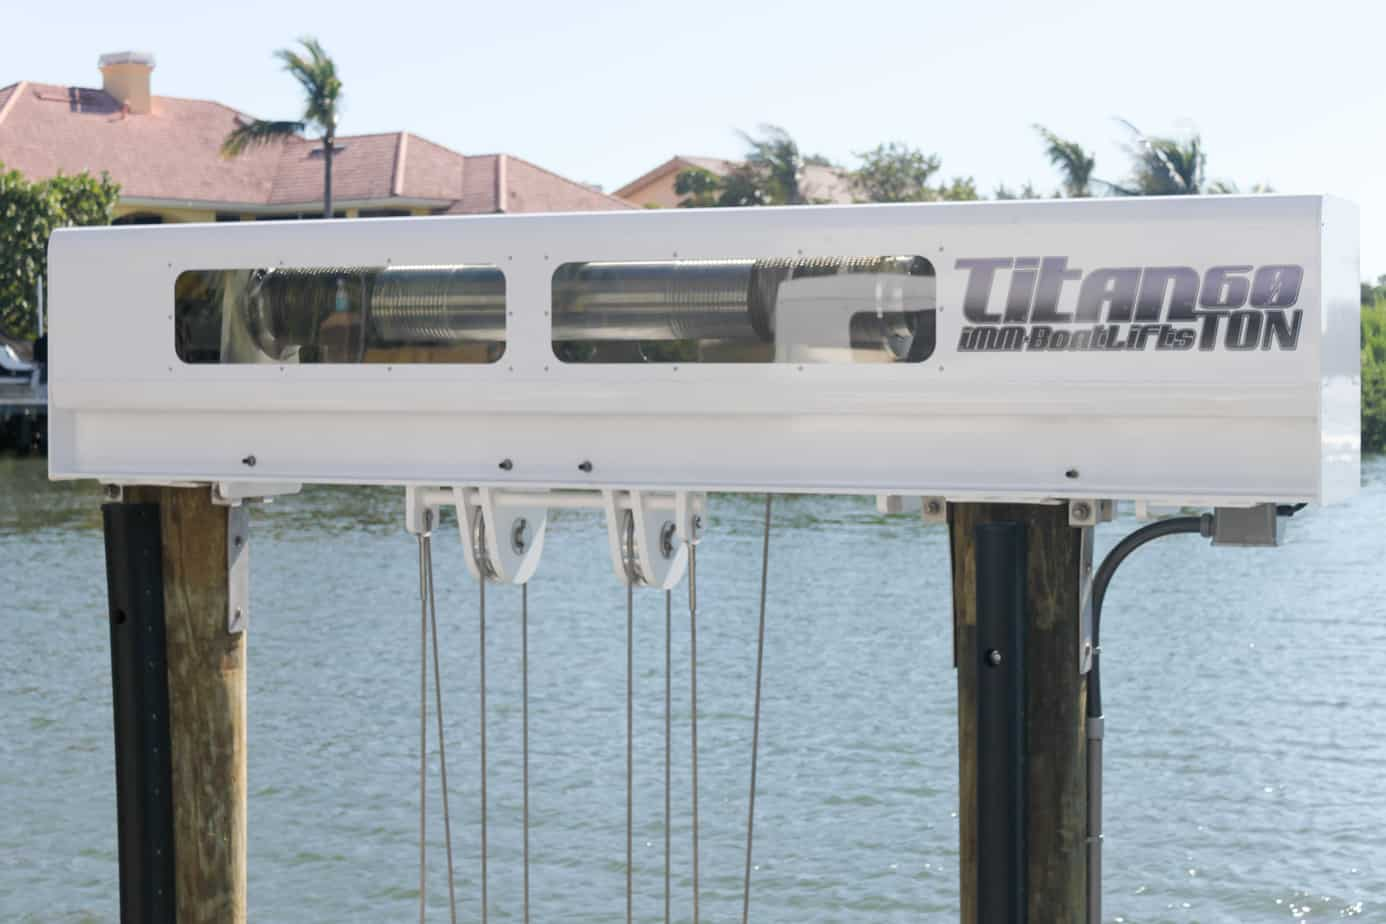 hight resolution of boat lift maintenance image patented technology titan beam on https